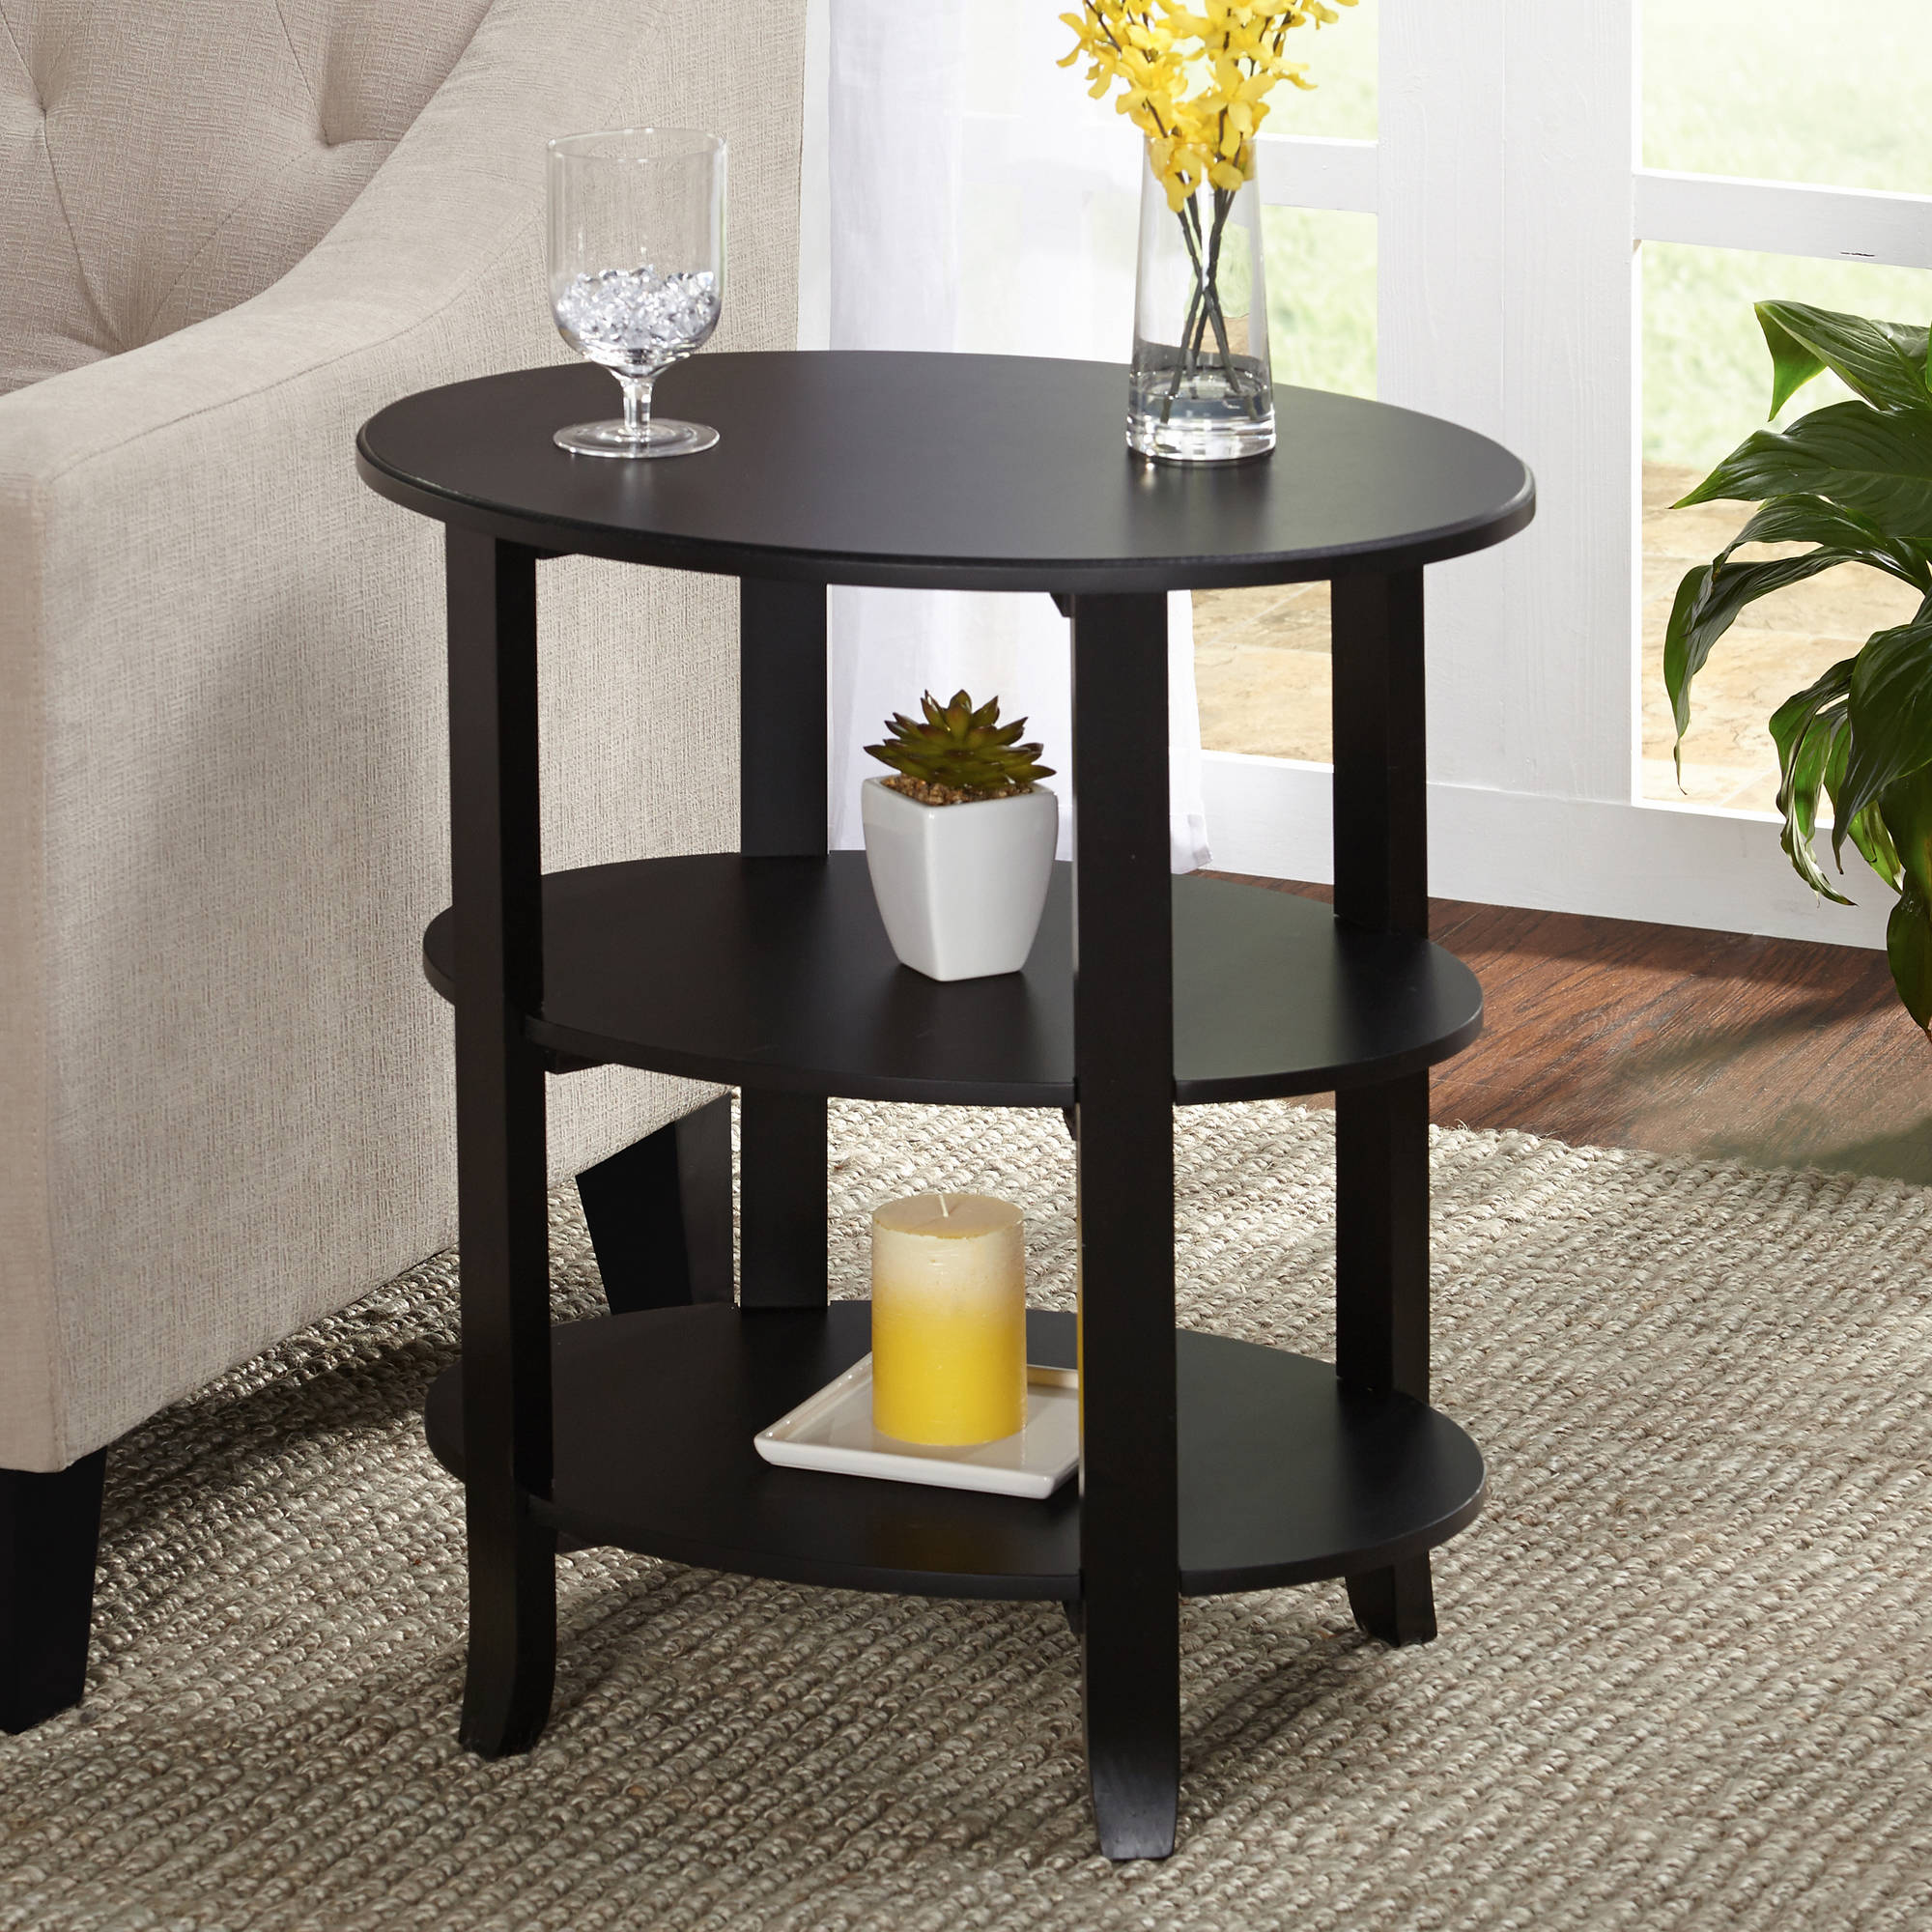 London 3-Tier Oval End Table, Multiple Finishes